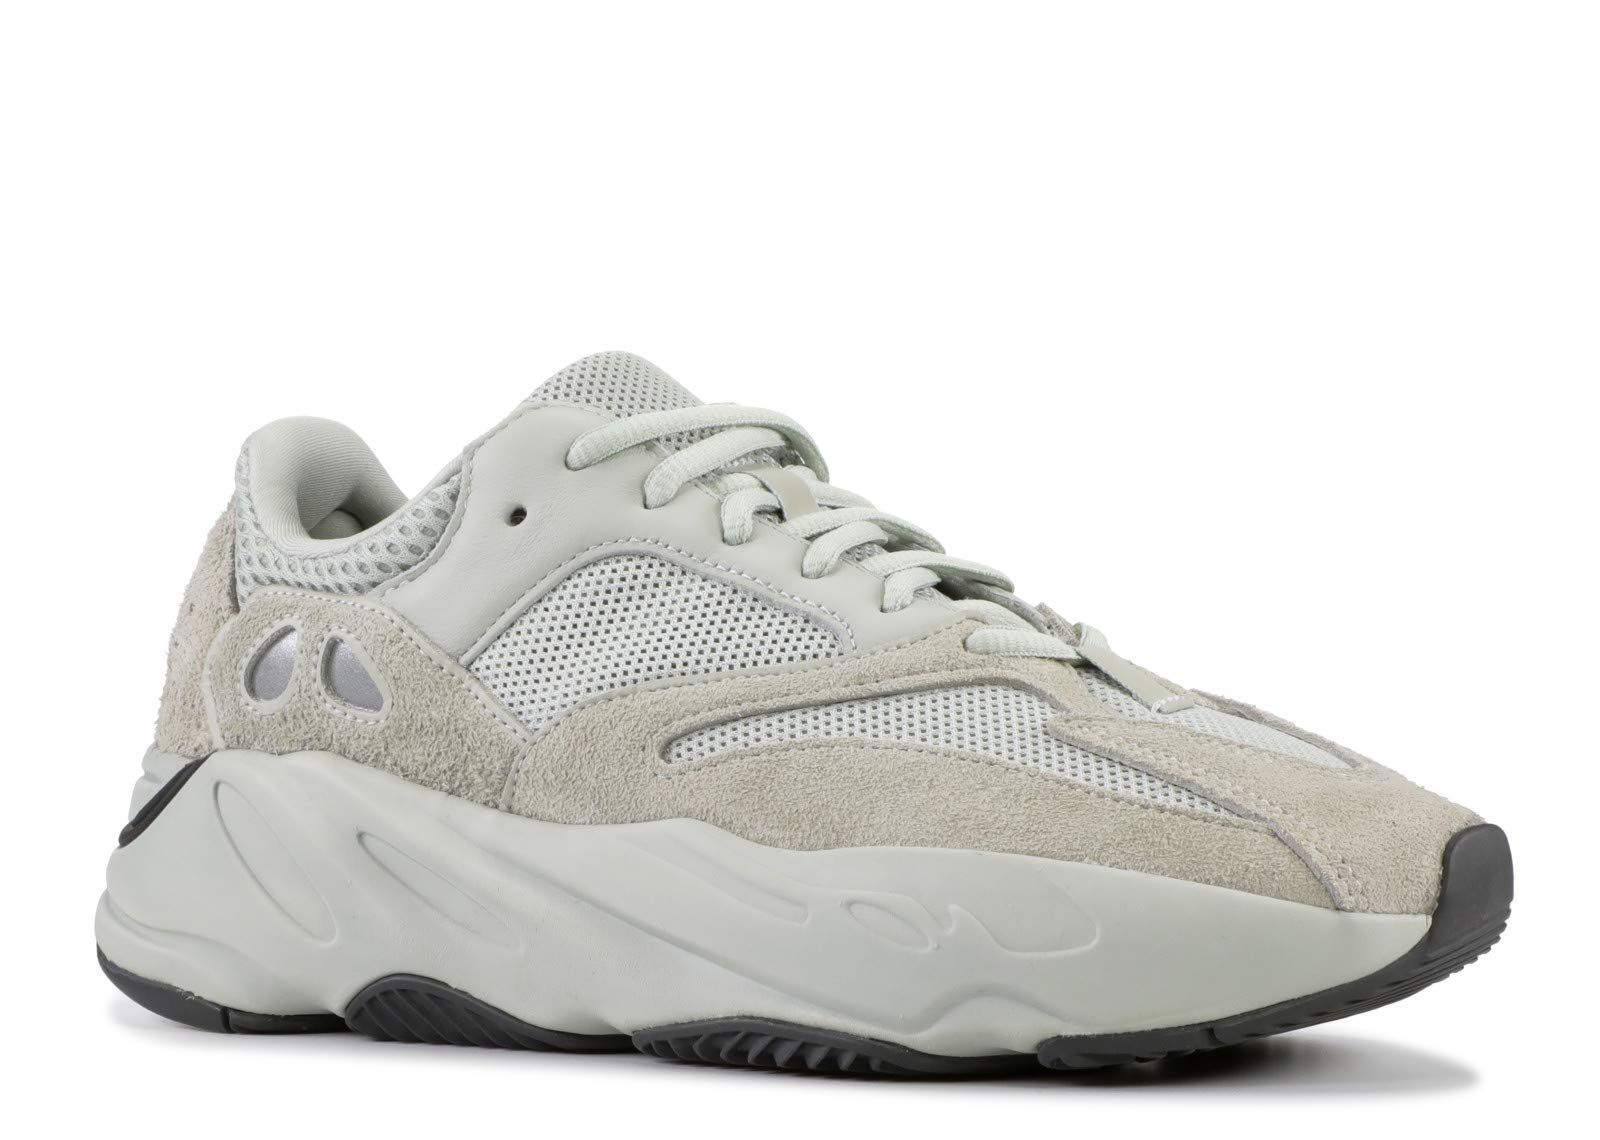 a9057a38d3fe5 Adidas Yeezy Wave Runner 700 Top Deals   Lowest Price